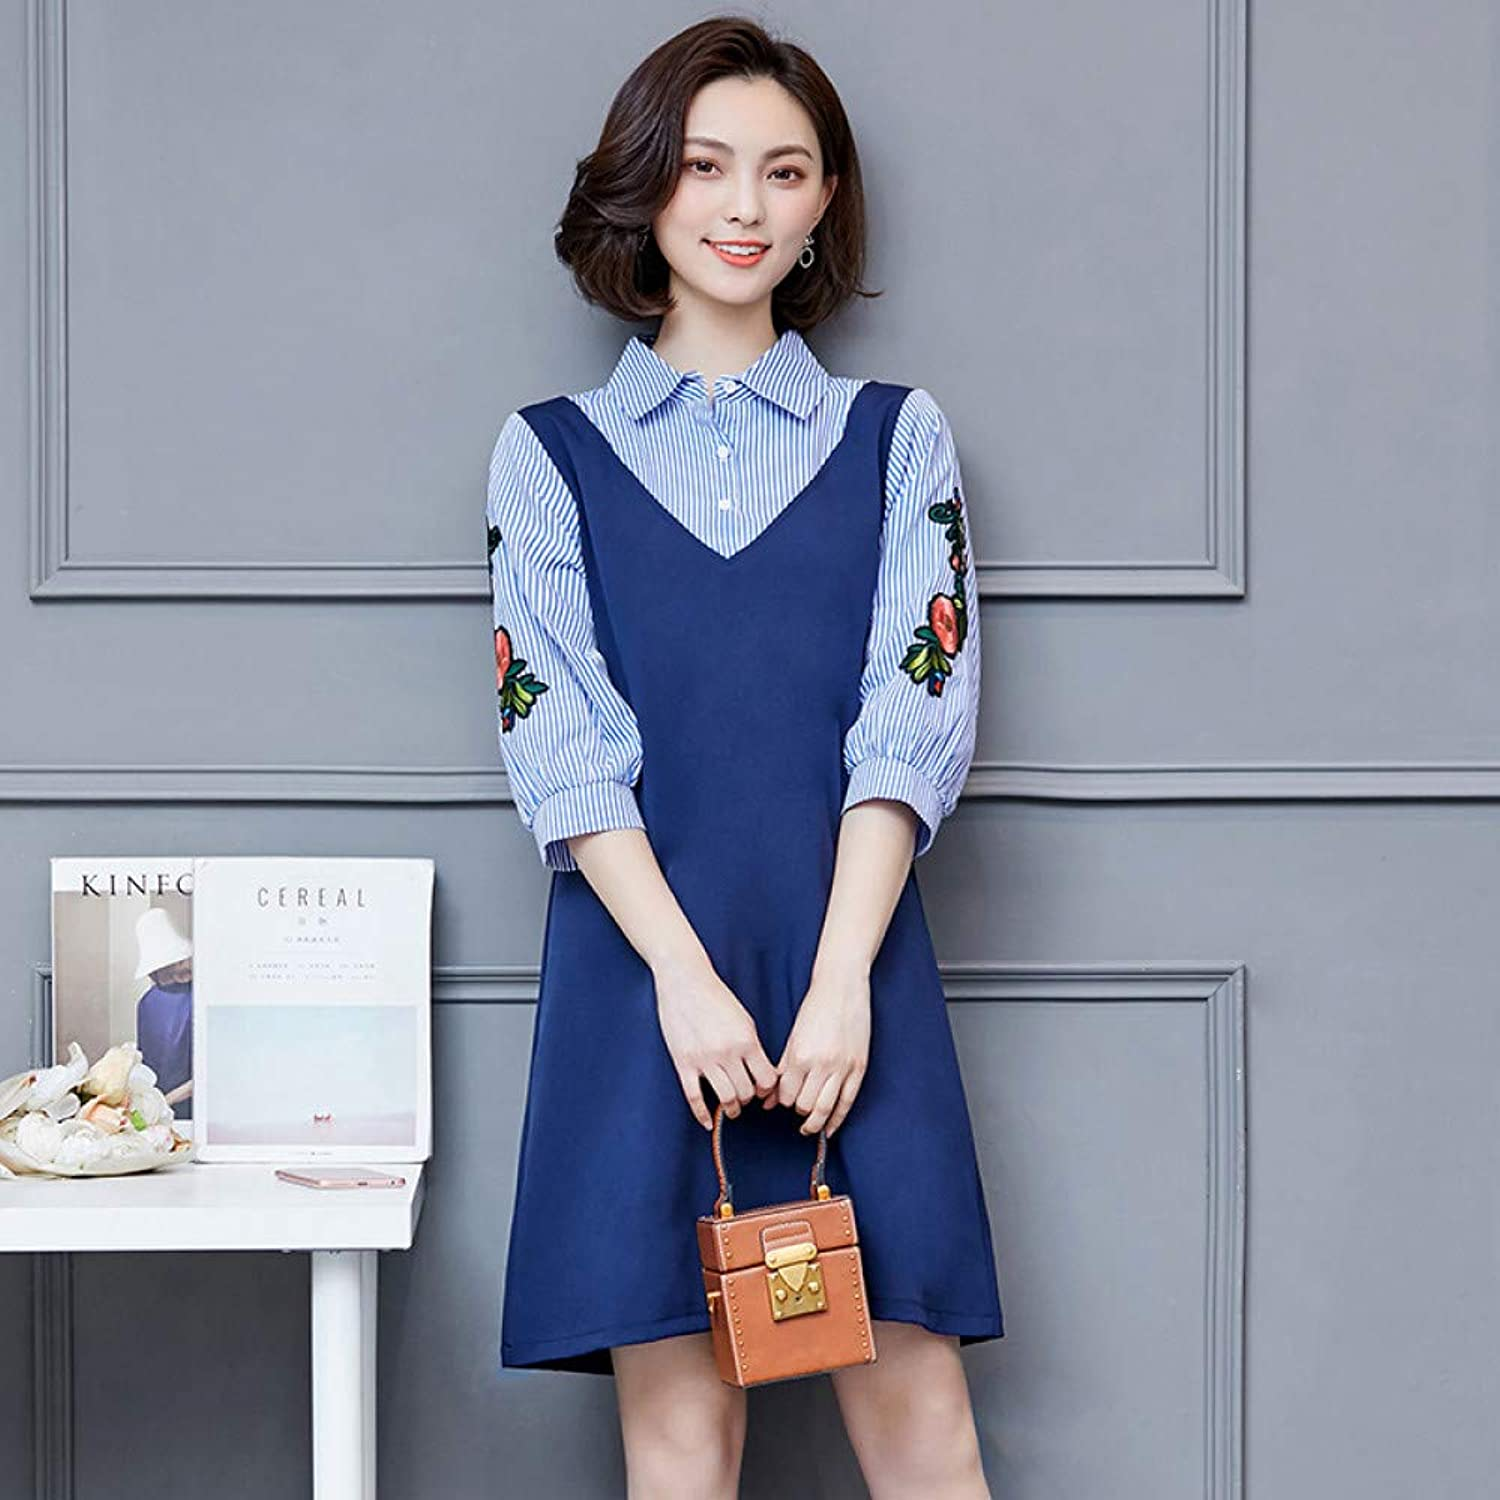 Cxlyq Dresses Large Size Women's Fat Sister Fake TwoPiece Embroidered Dress FivePoint Sleeve